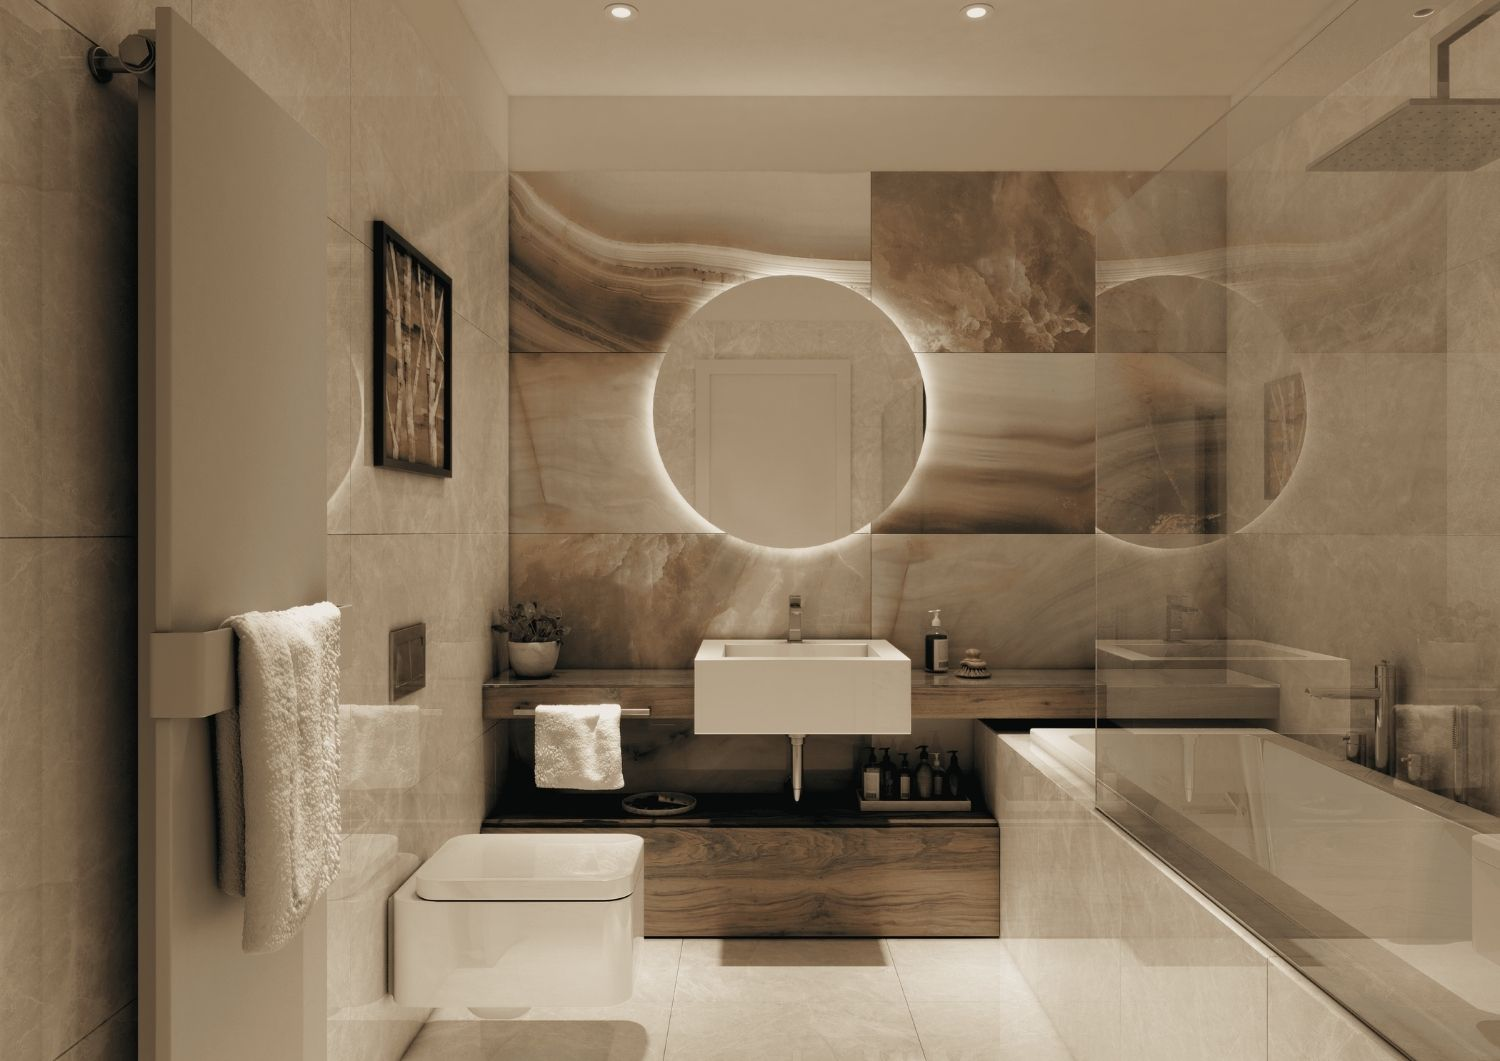 The master bedroom offers a delicate atmosphere. Studio D73